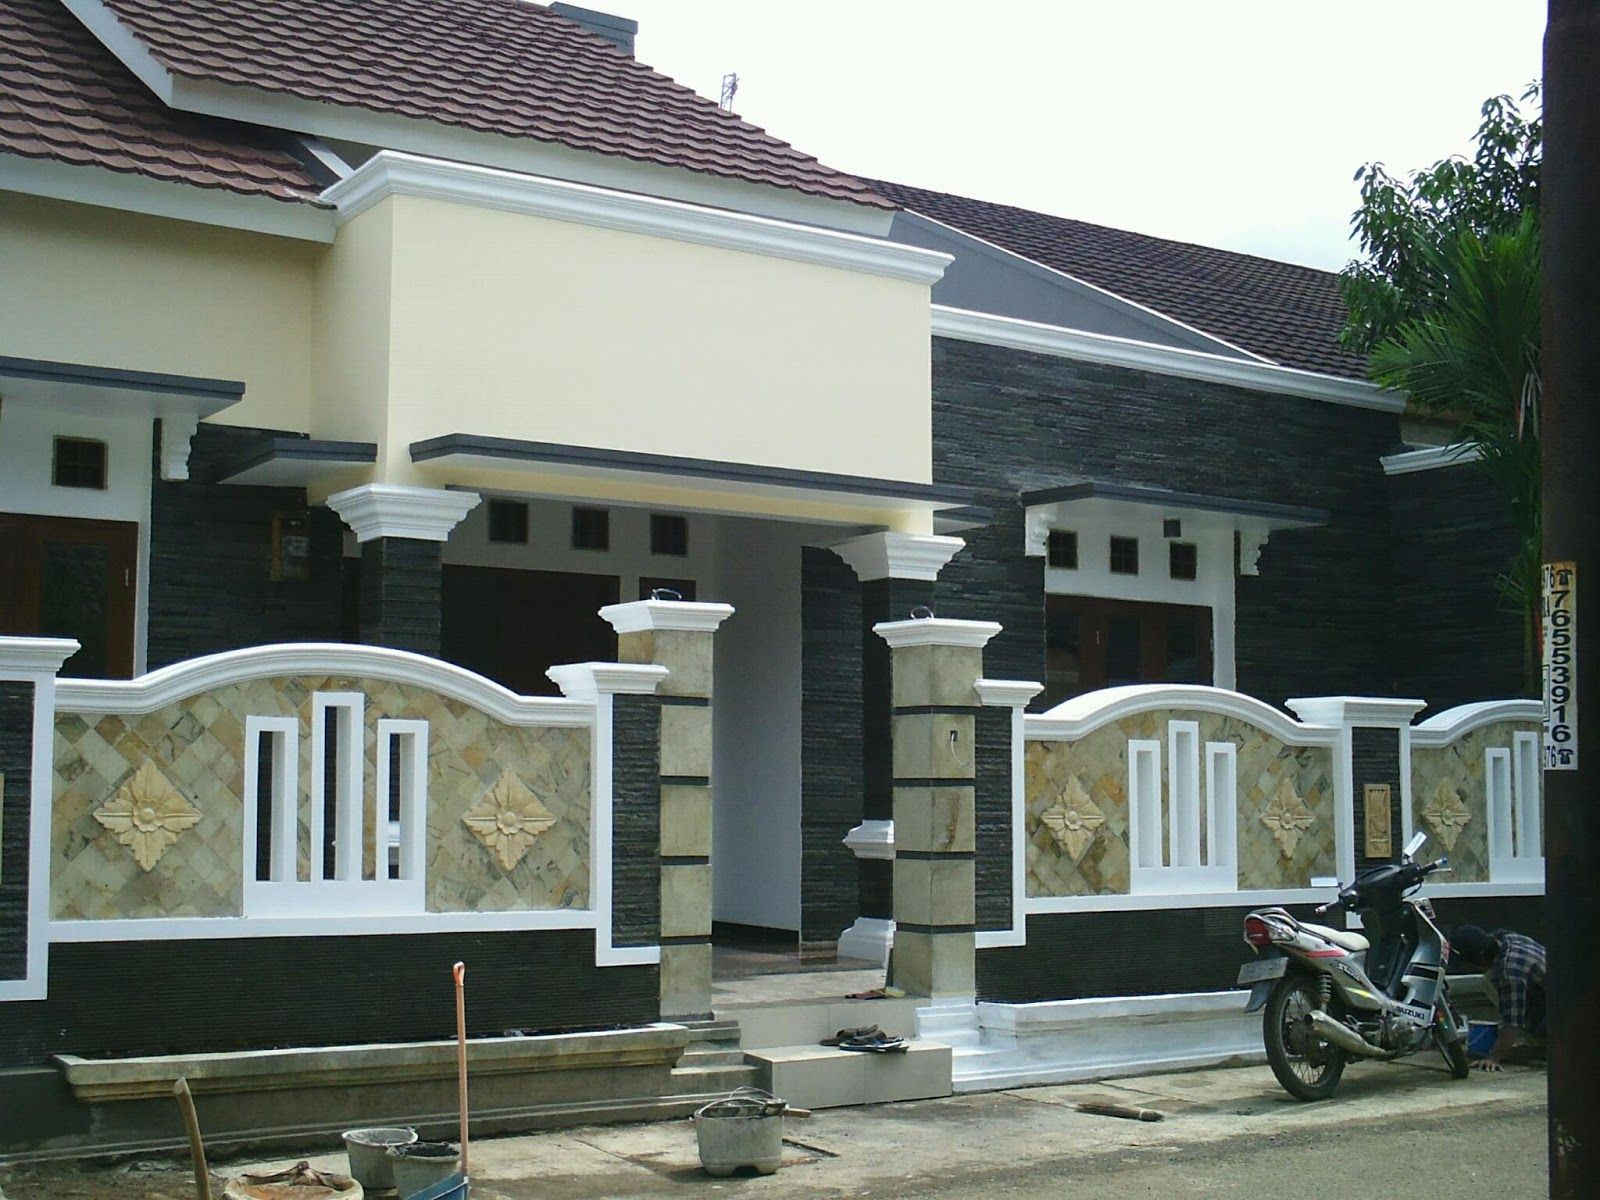 Desain Pagar Depan Rumah Pagar Pinterest Fences Walls And